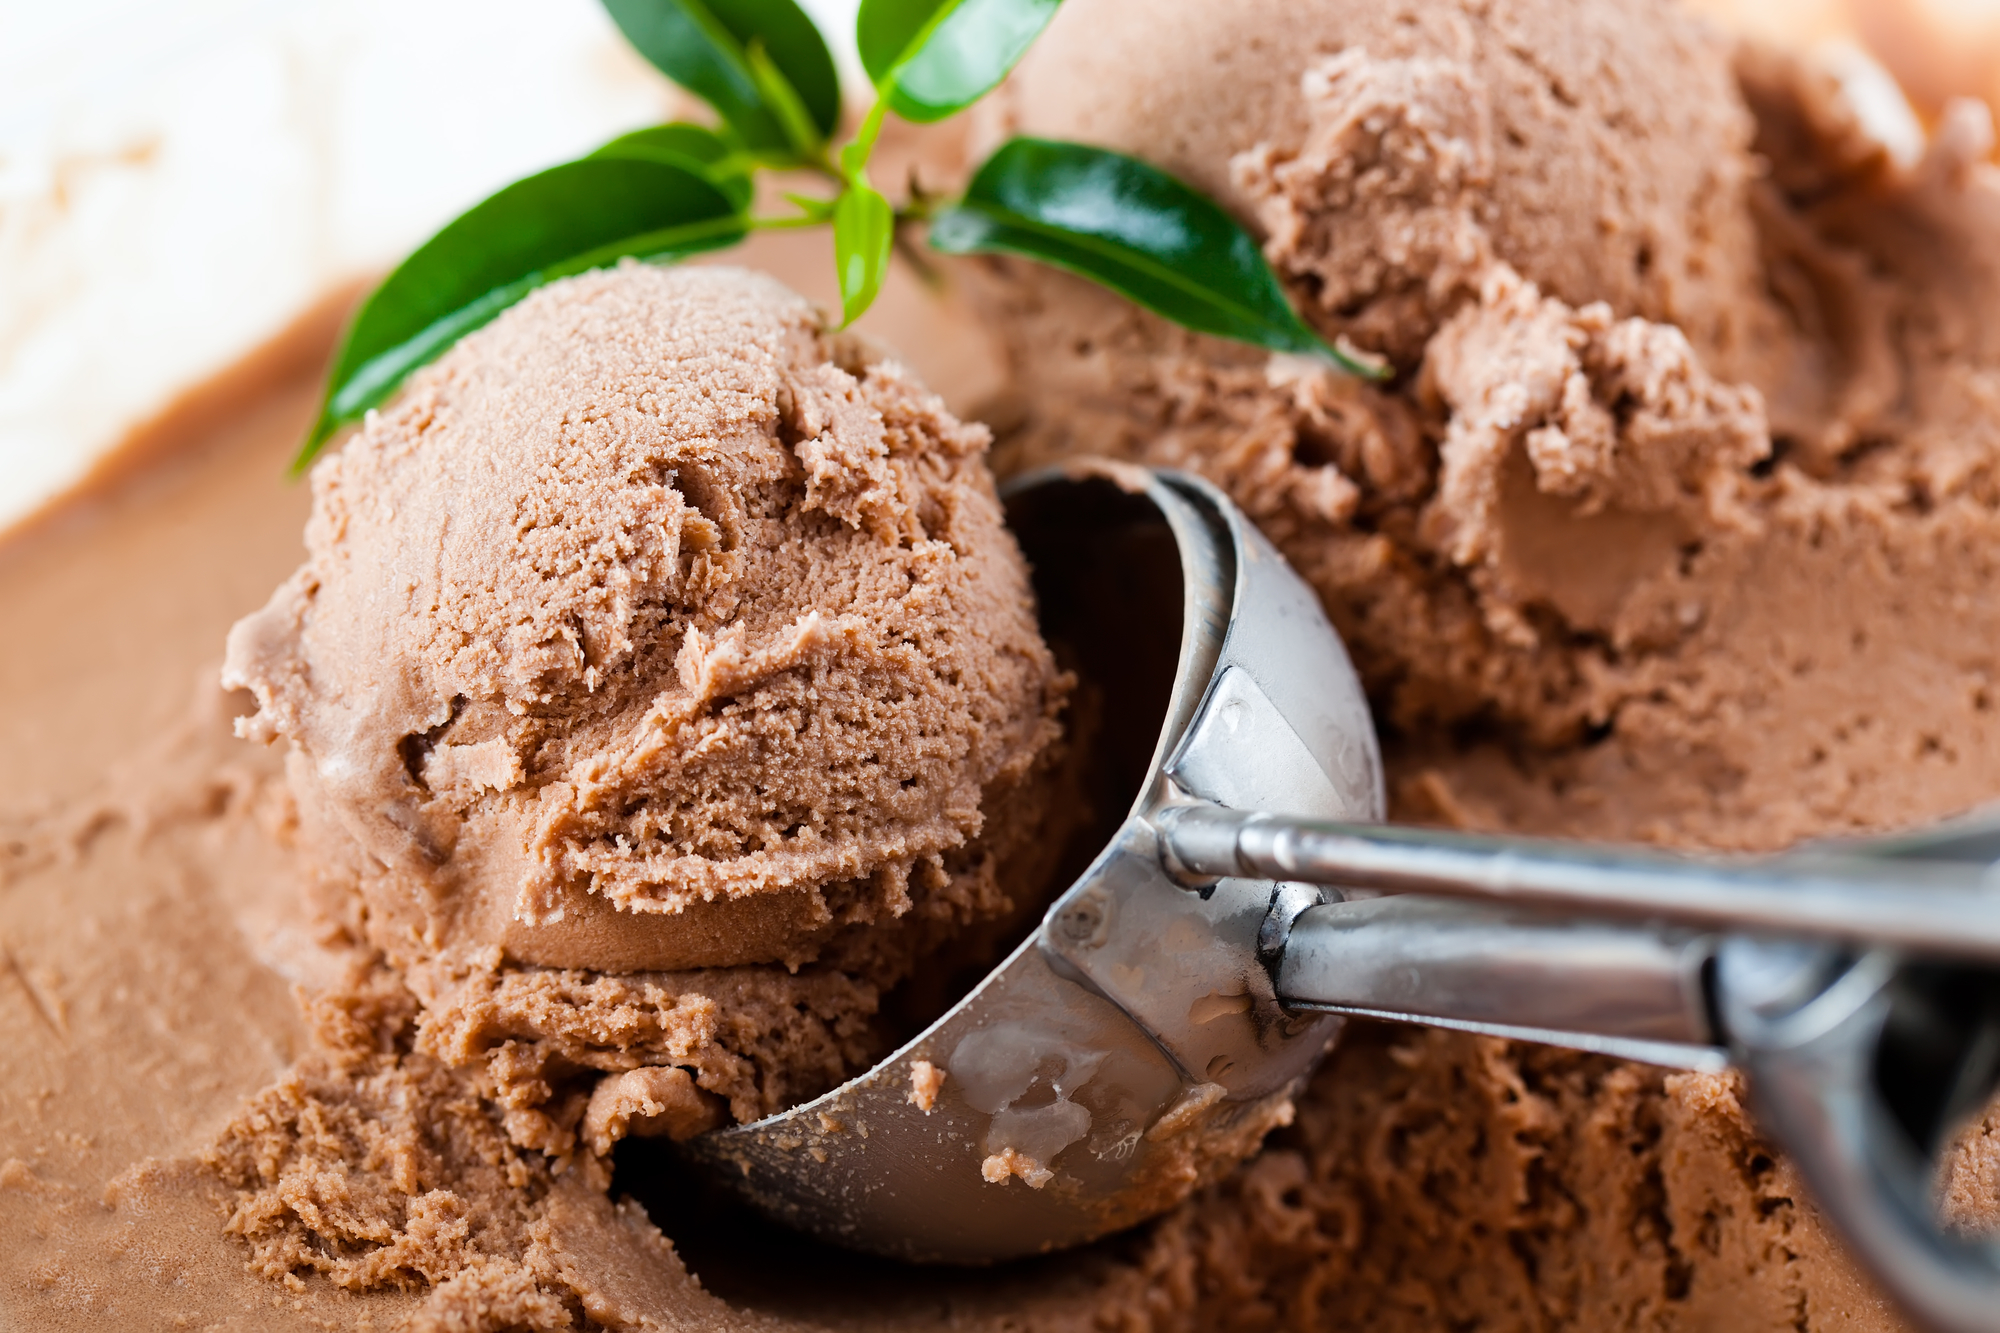 Differences Between Ice Cream and Gelato